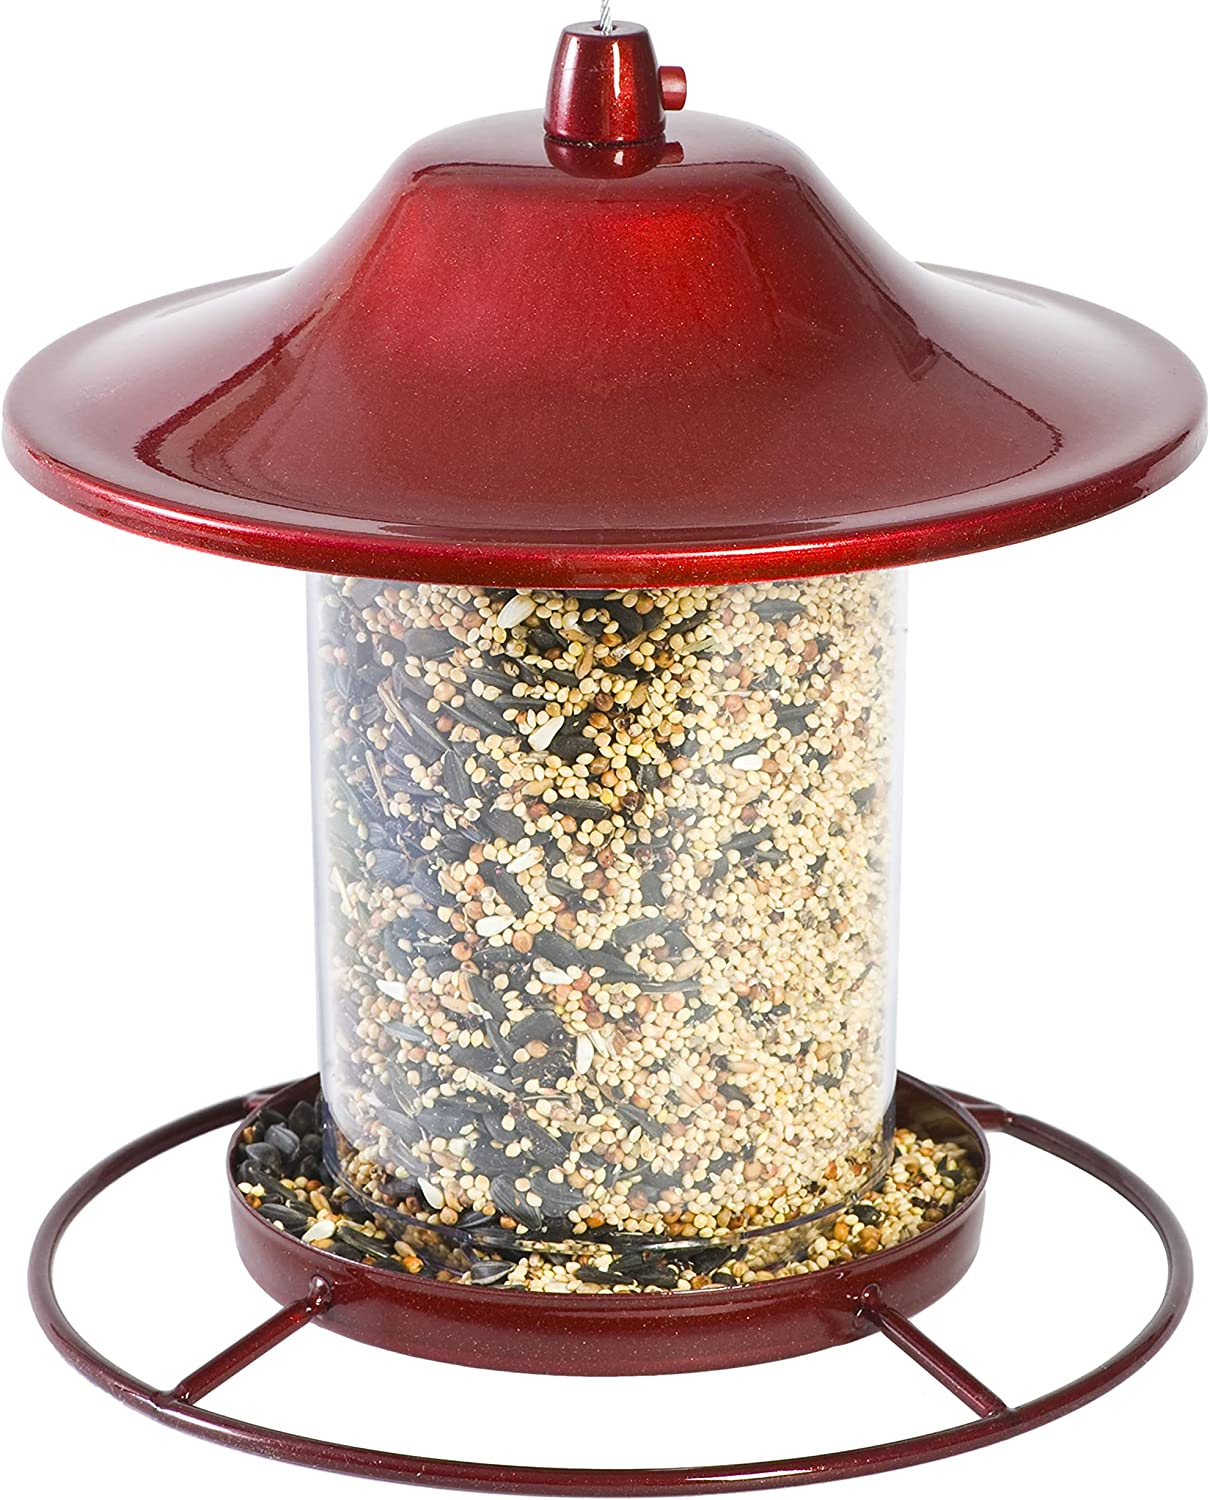 Perky-Pet 312R Red Financial sales sale Sparkle Panorama Bird Japan's largest assortment Feeder